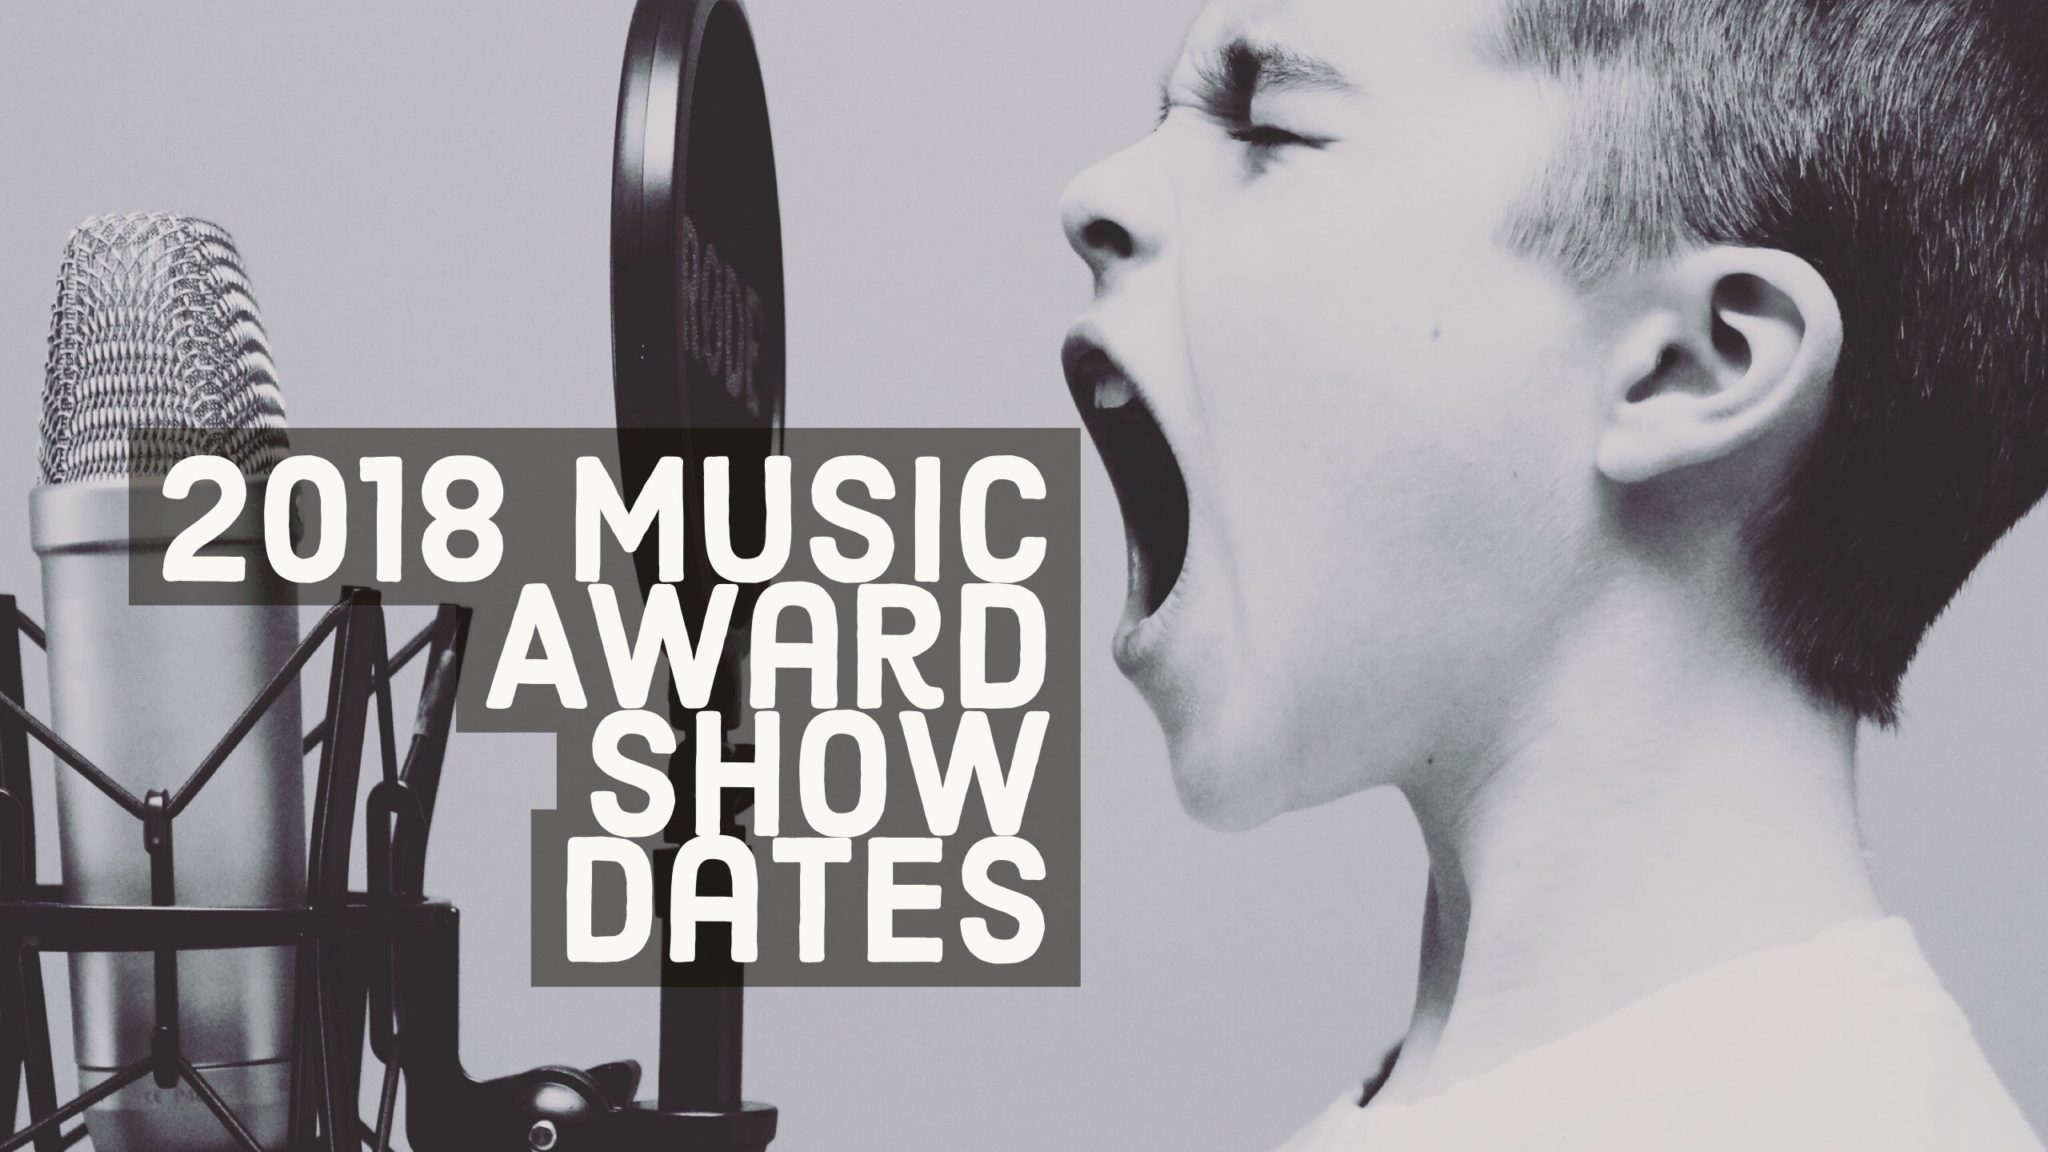 List of 2018 Music Award Shows